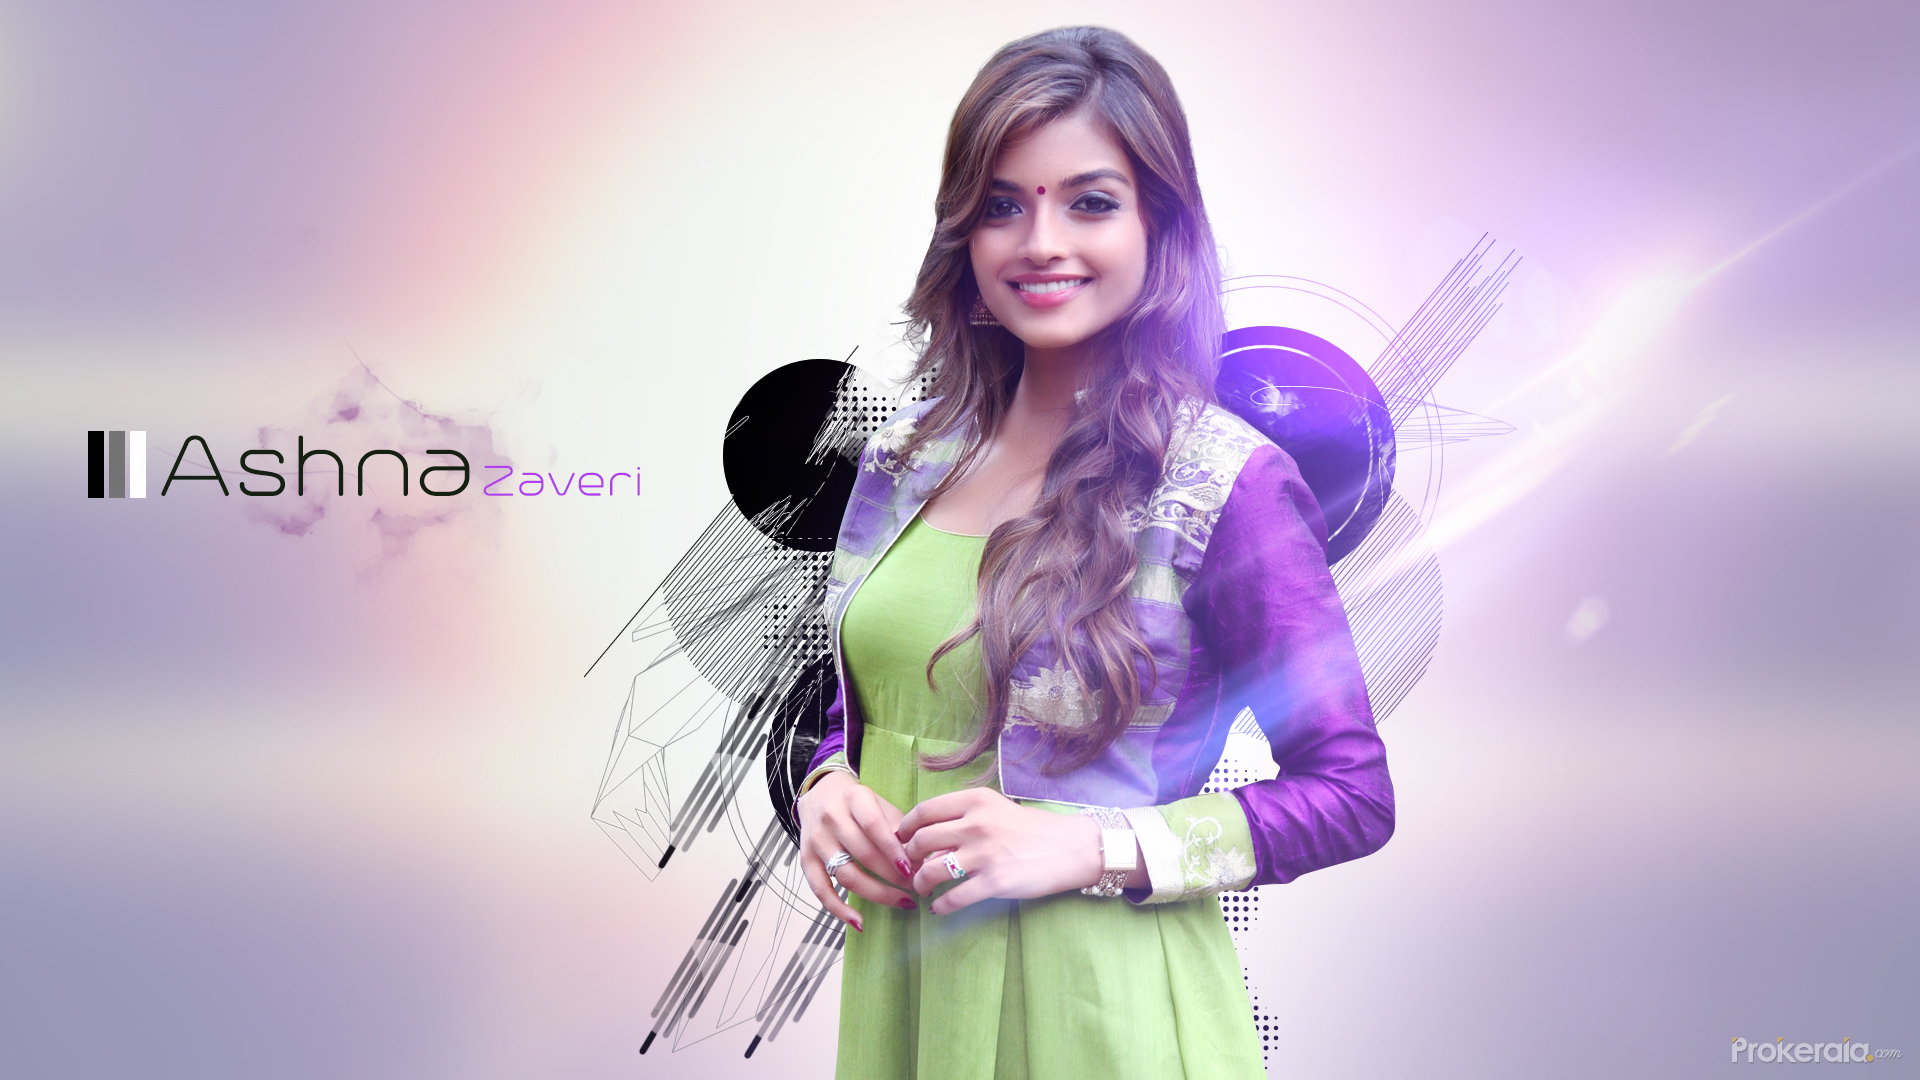 Ashna Zaveri Wallpaper